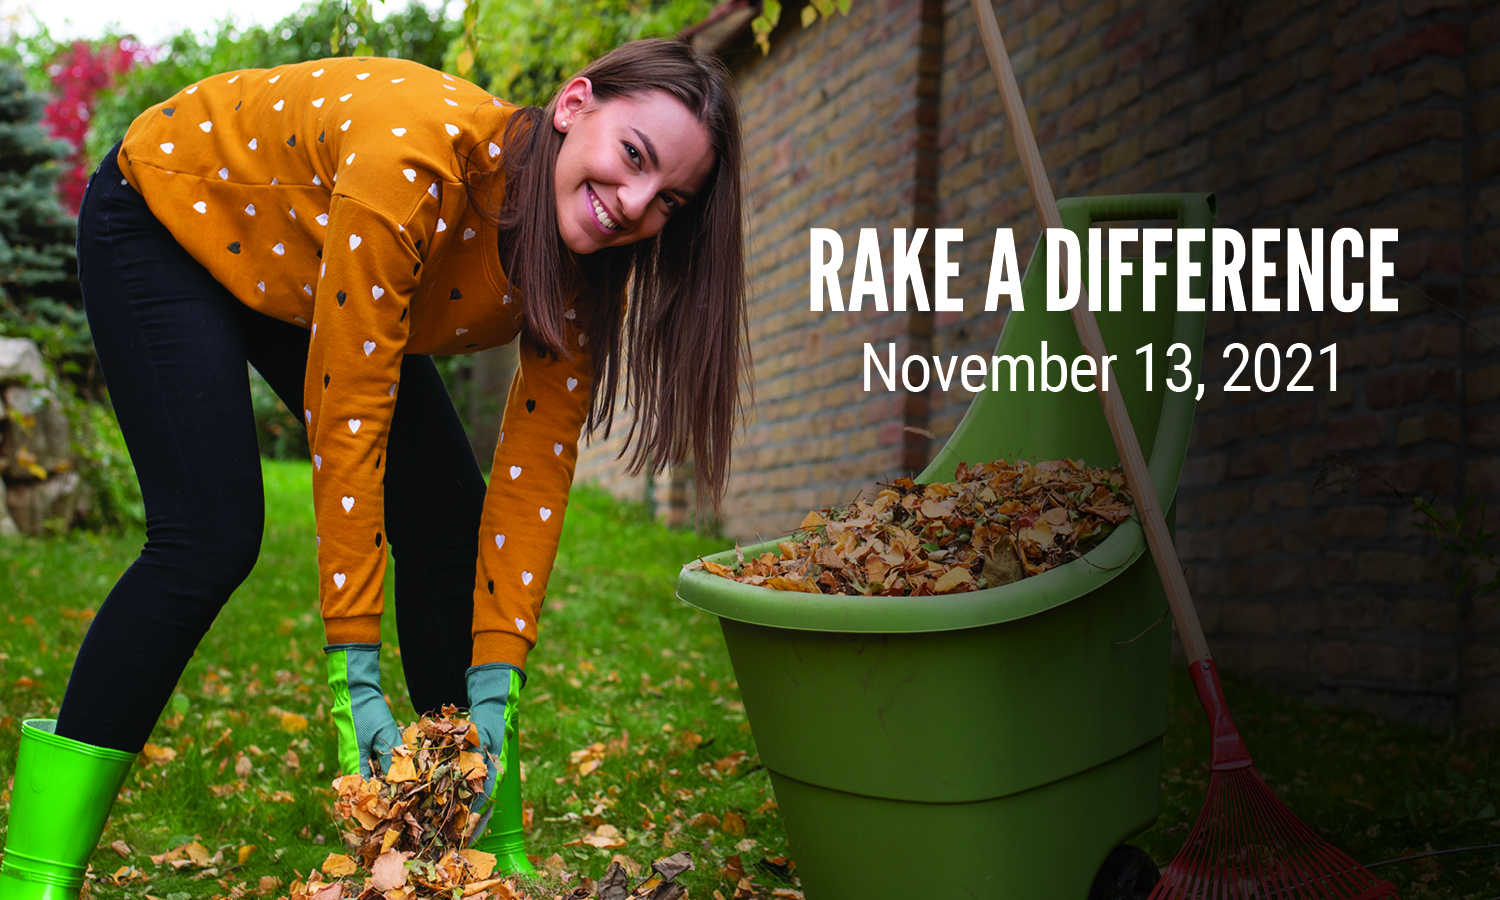 Rake A Difference